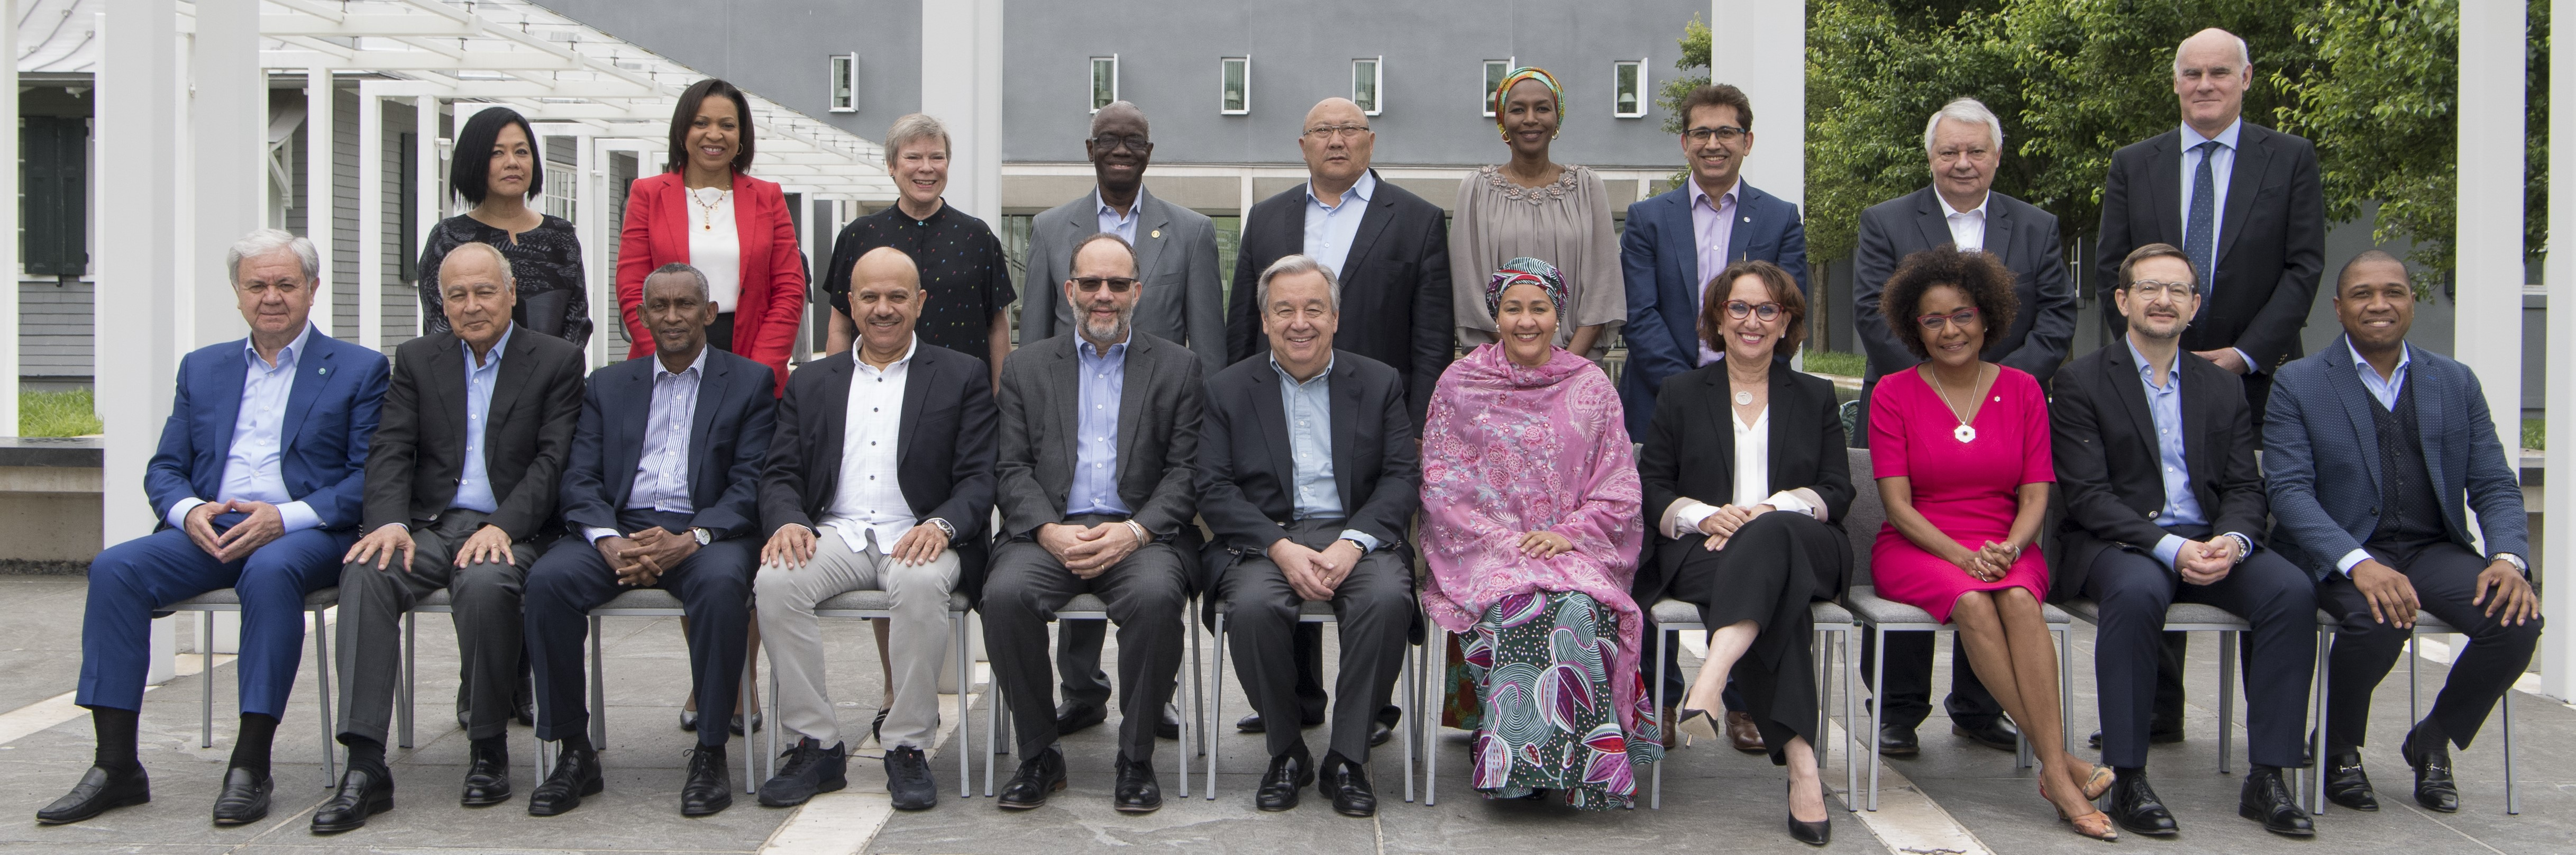 Secretary-General Guterres with heads of regional organizations, UN Photo 765627